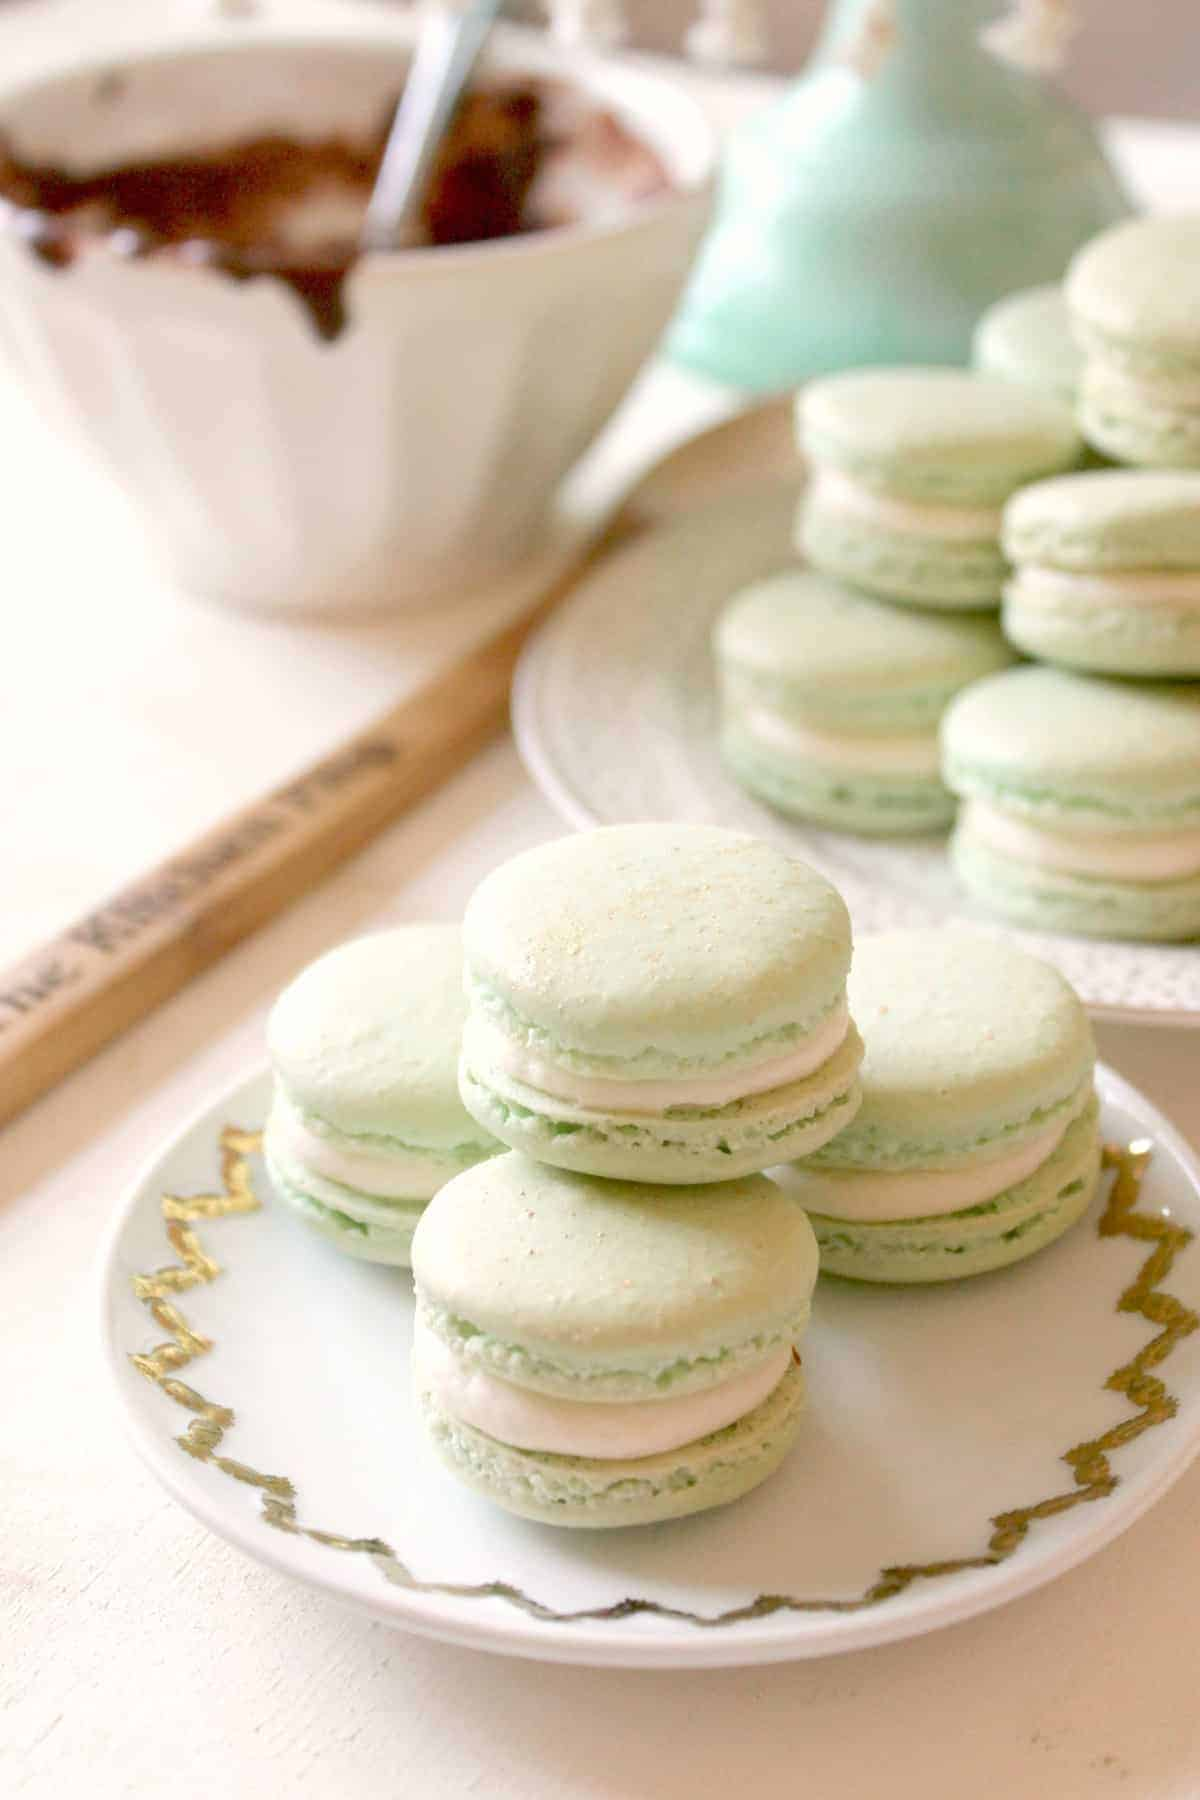 These fool-proof Irish Cream French Macarons are filled with a creamy chocolate center